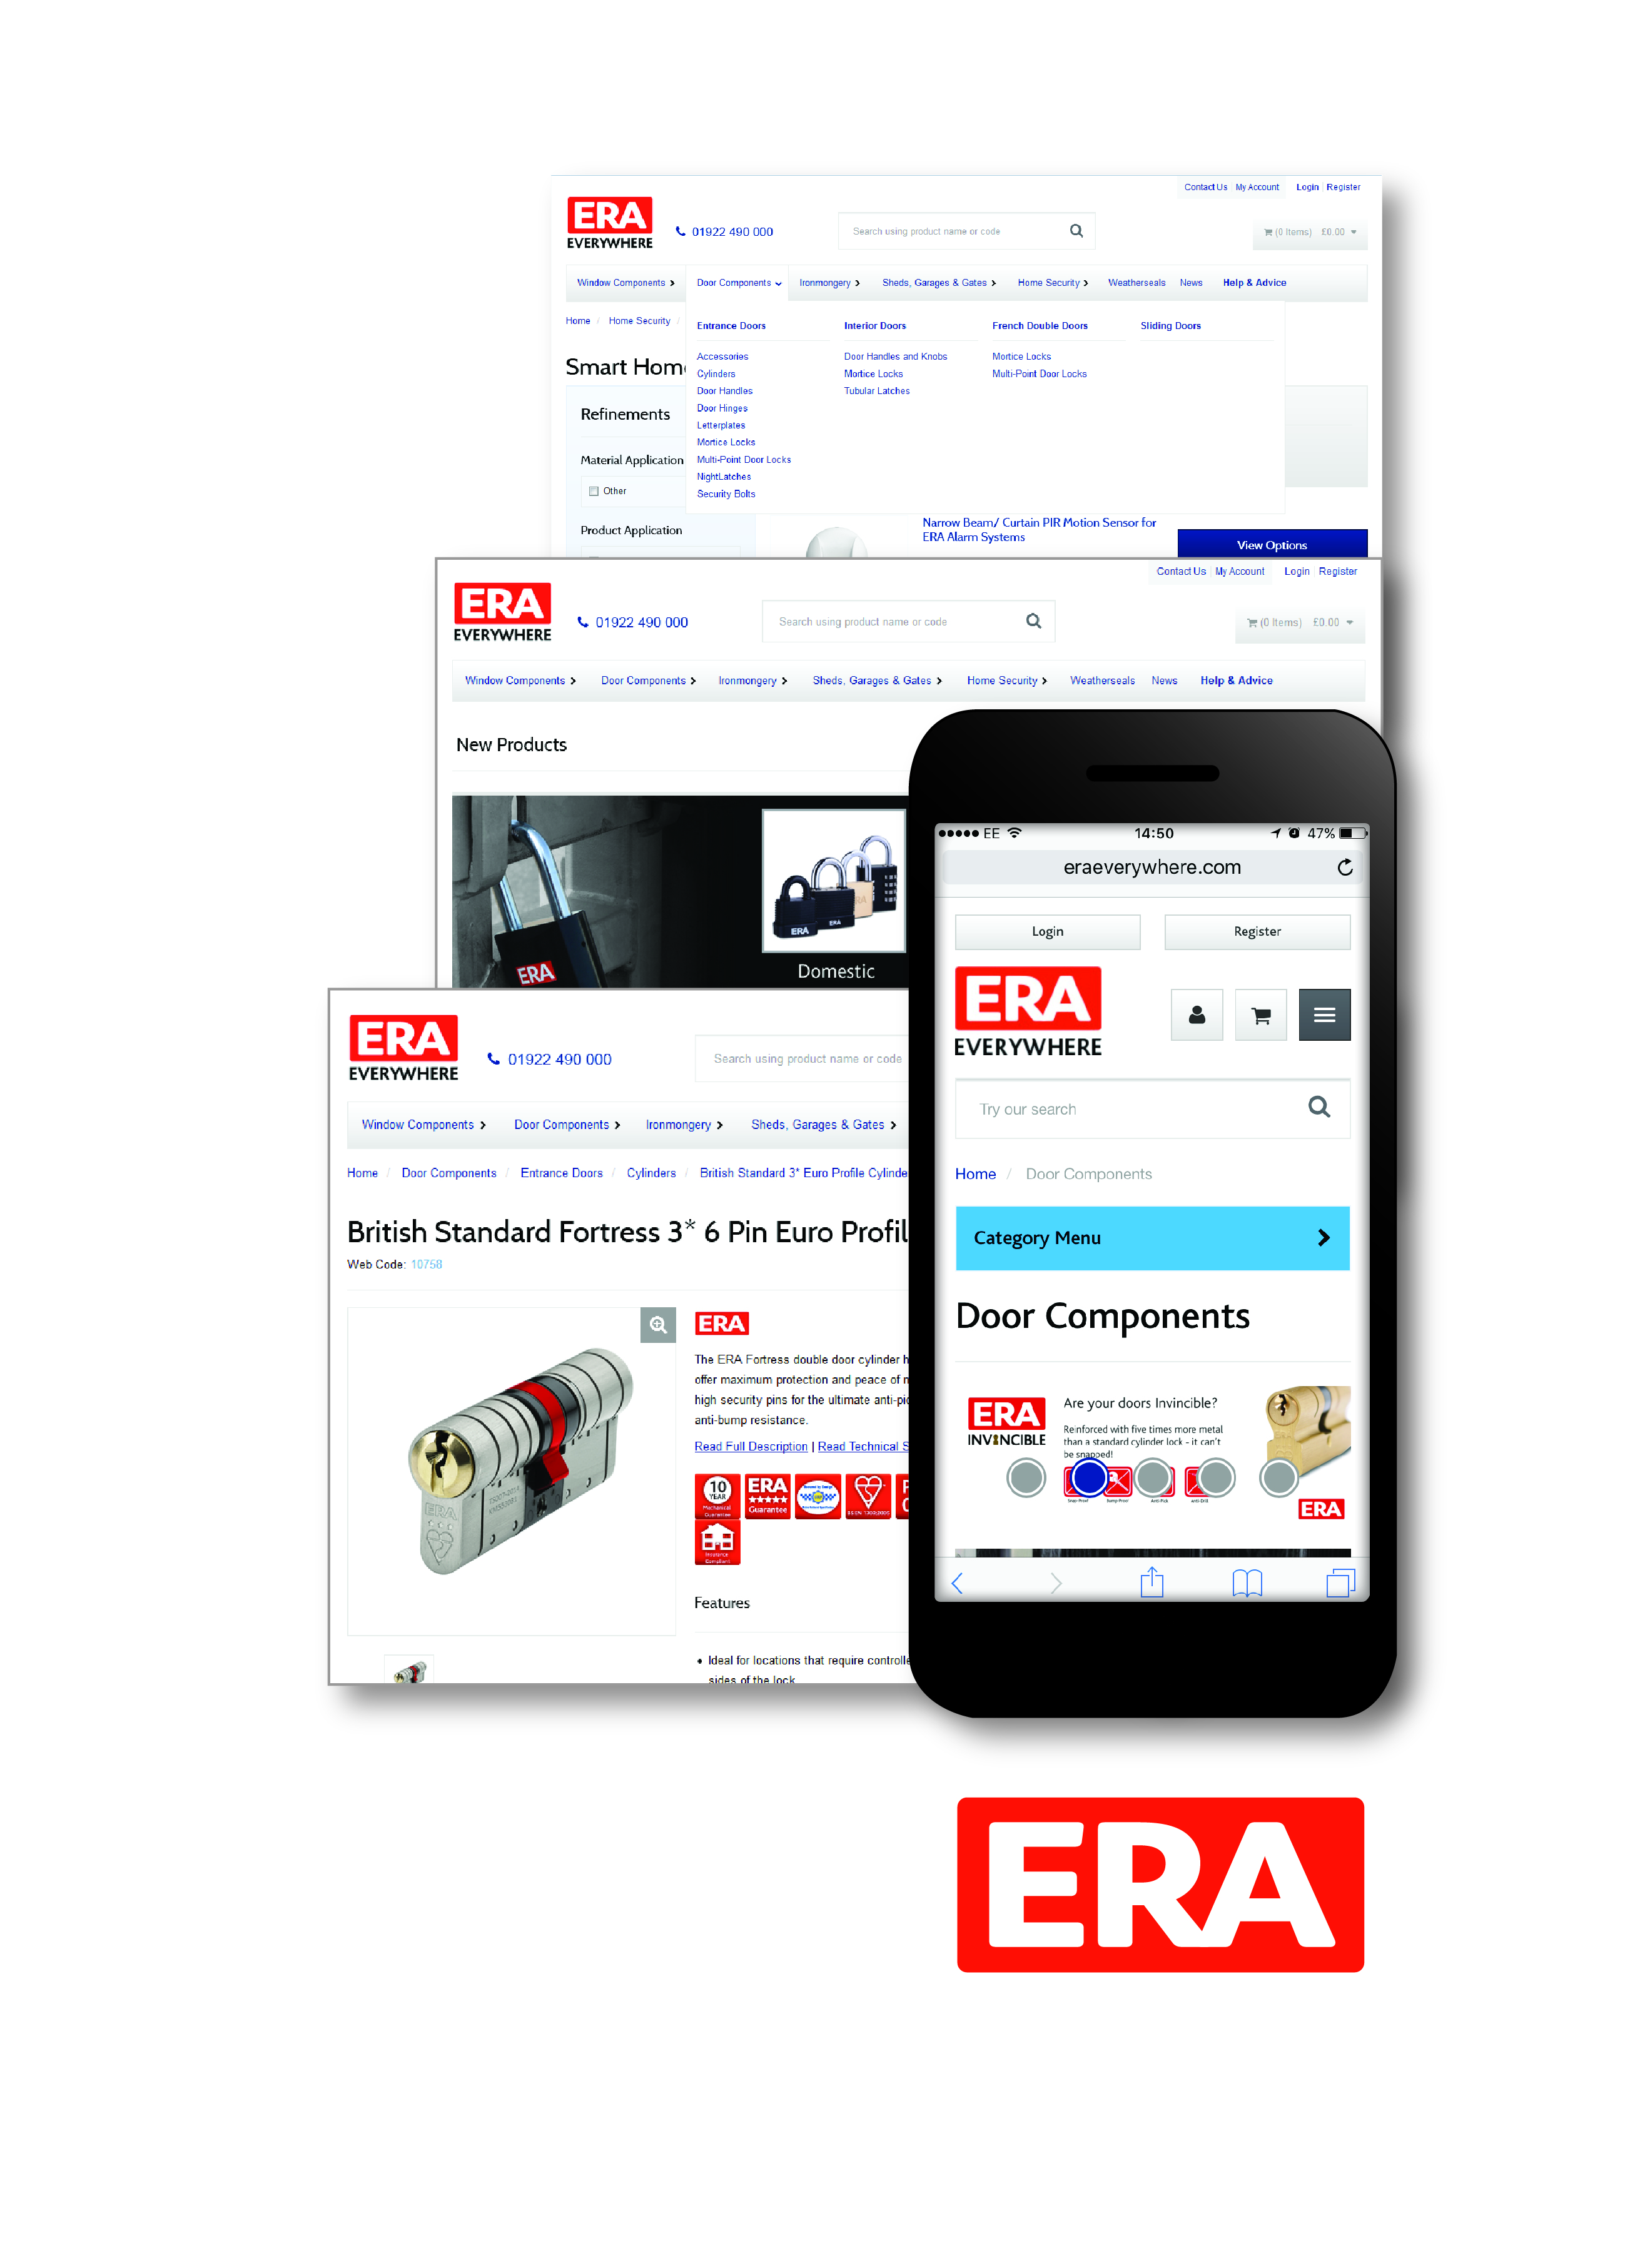 ERA Everywhere Pic-01.jpg